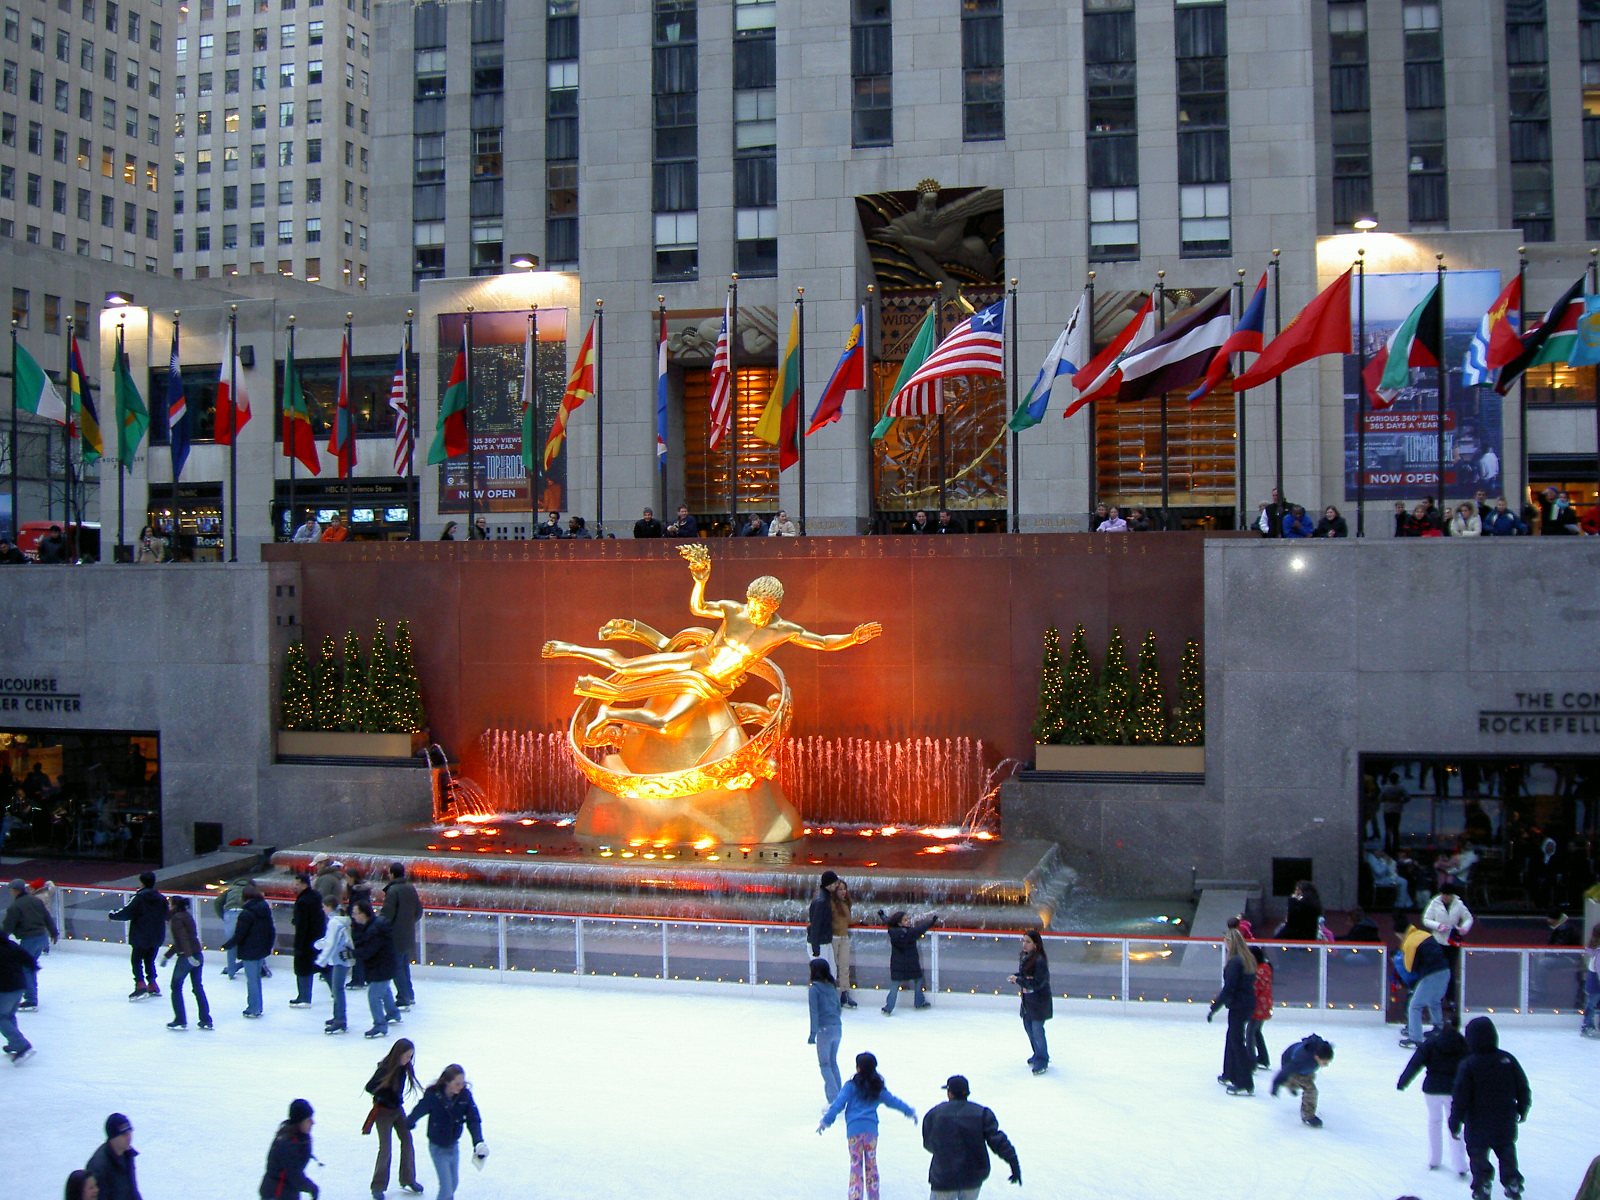 New York Rockefeller Center - FrizeMedia